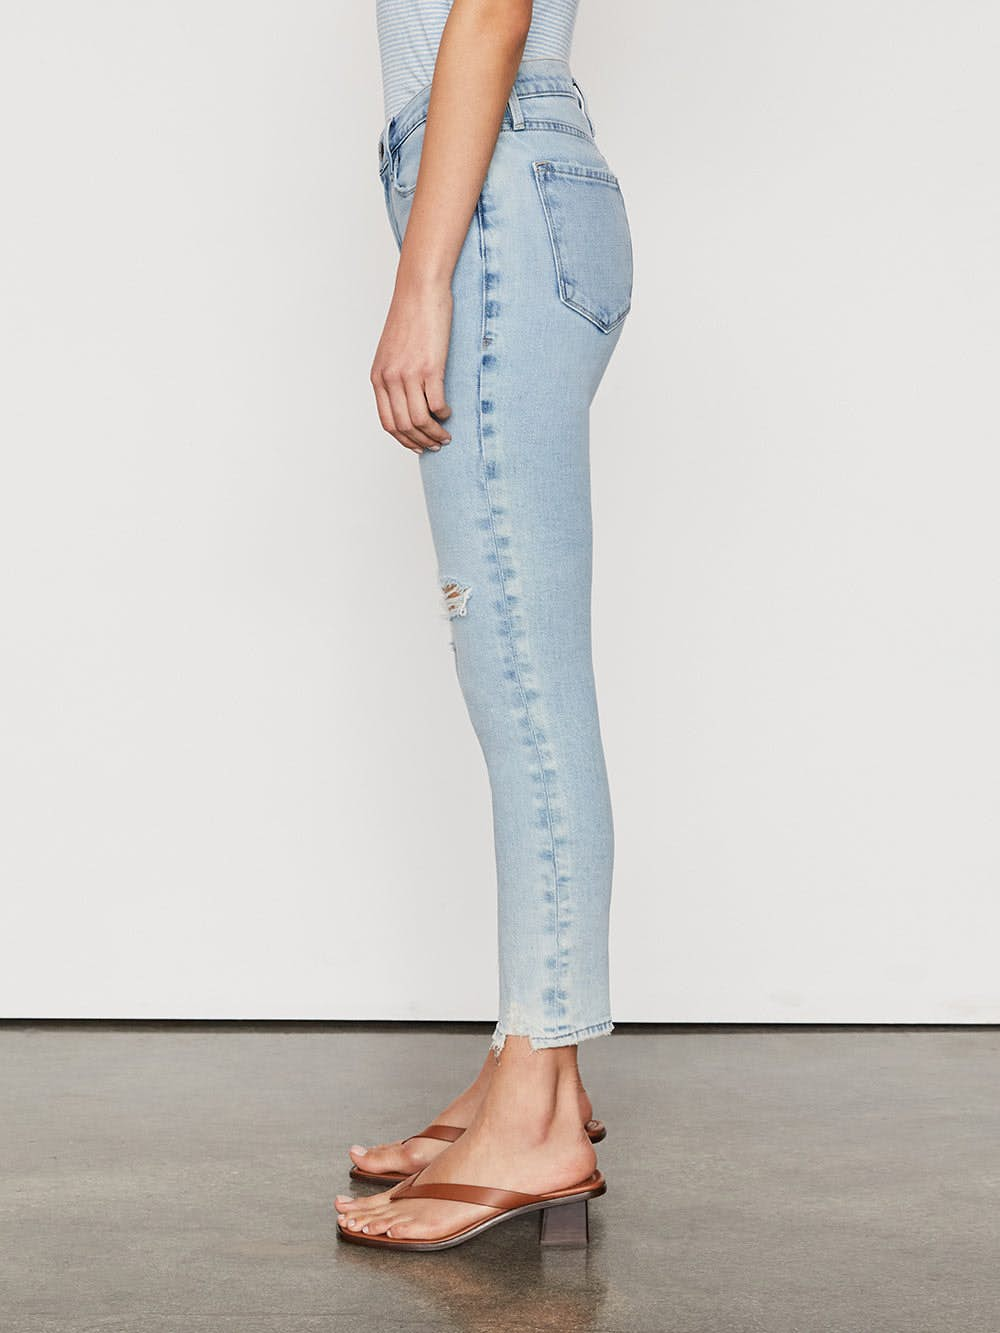 jeans side view